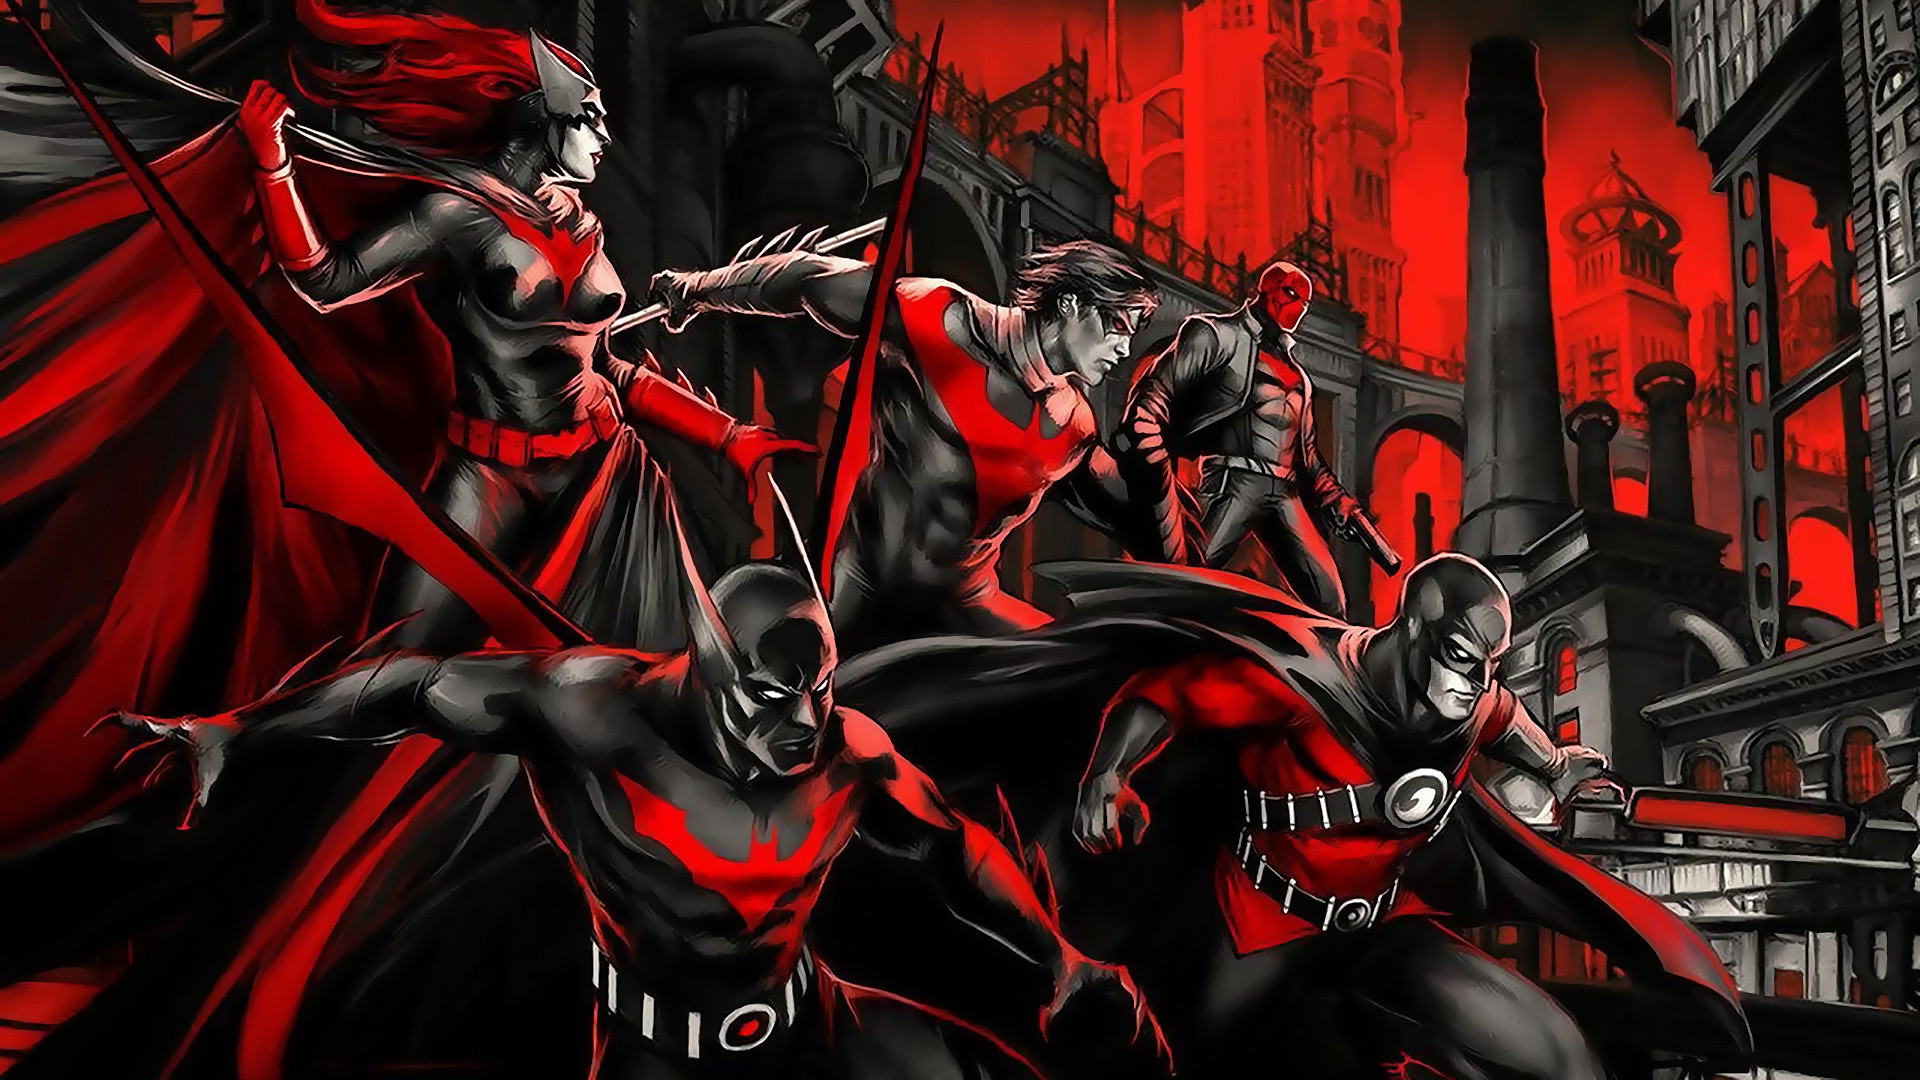 [1920×1080] Bat Family Need #iPhone #6S #Plus #Wallpaper/ #Background for  #IPhone6SPlus? Follow iPhone 6S Plus 3Wallpapers/ #Backgrounds Must to Ha…